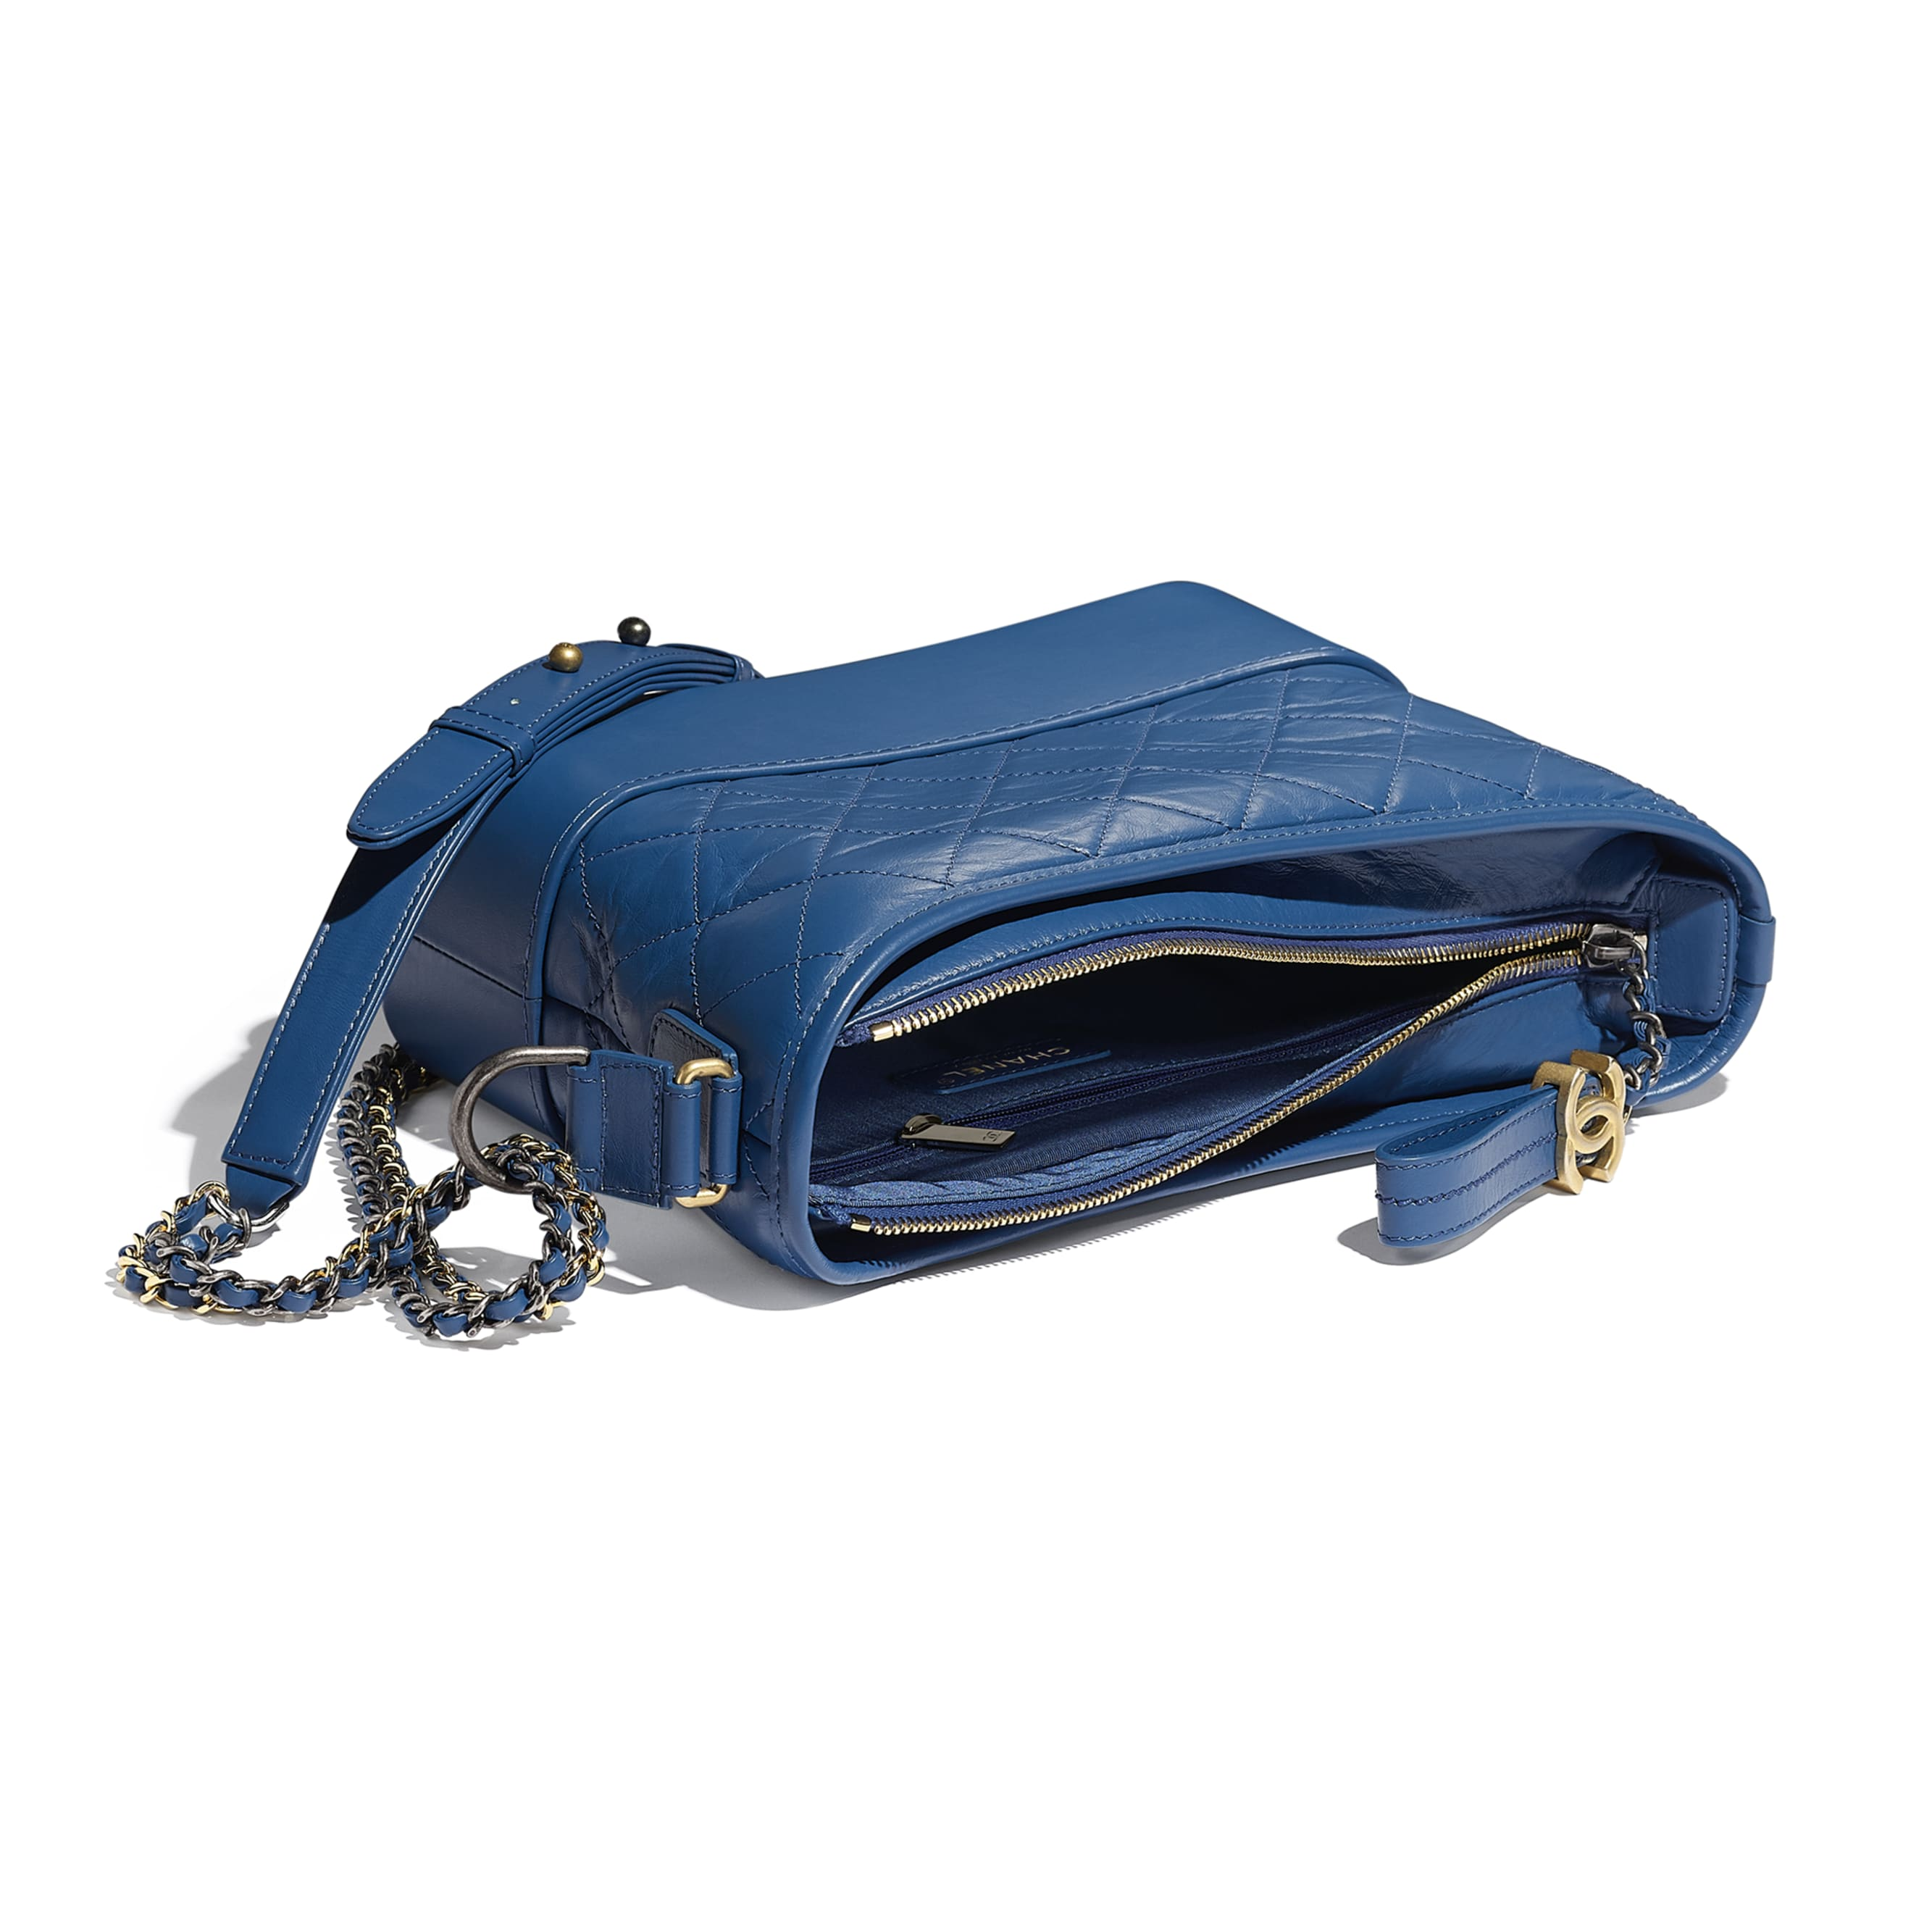 CHANEL'S GABRIELLE Hobo Handbag - Dark Blue - Aged Calfskin, Smooth Calfskin, Gold-Tone, Silver-Tone & Ruthenium-Finish Metal - CHANEL - Other view - see standard sized version